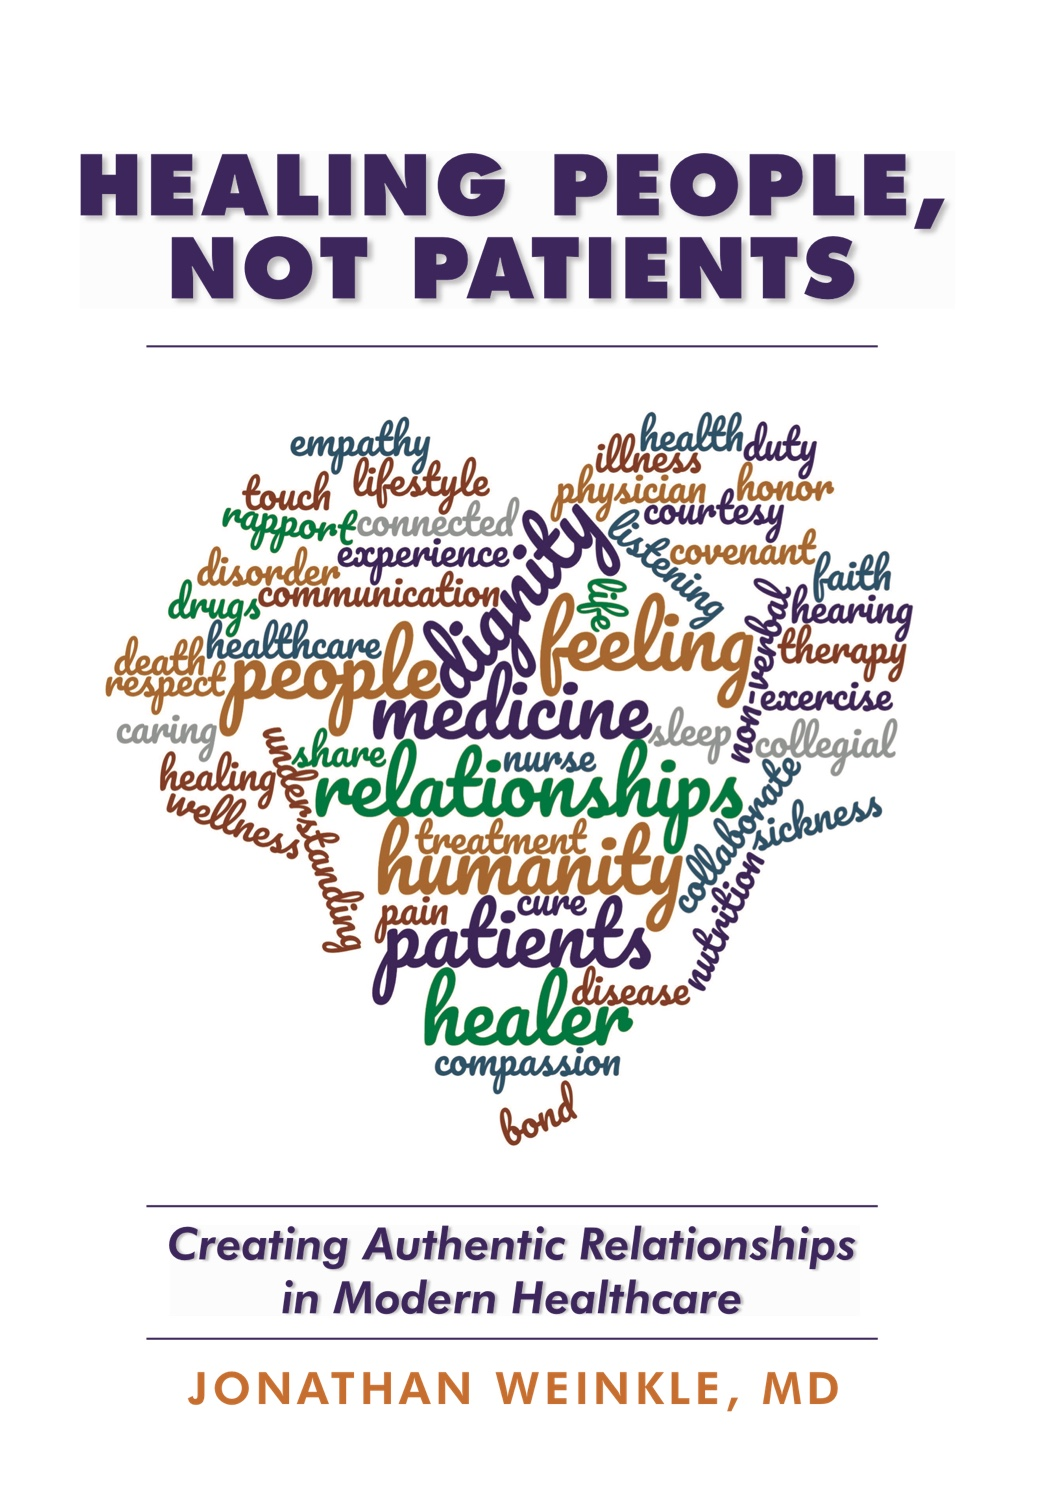 Healing People, Not Patients